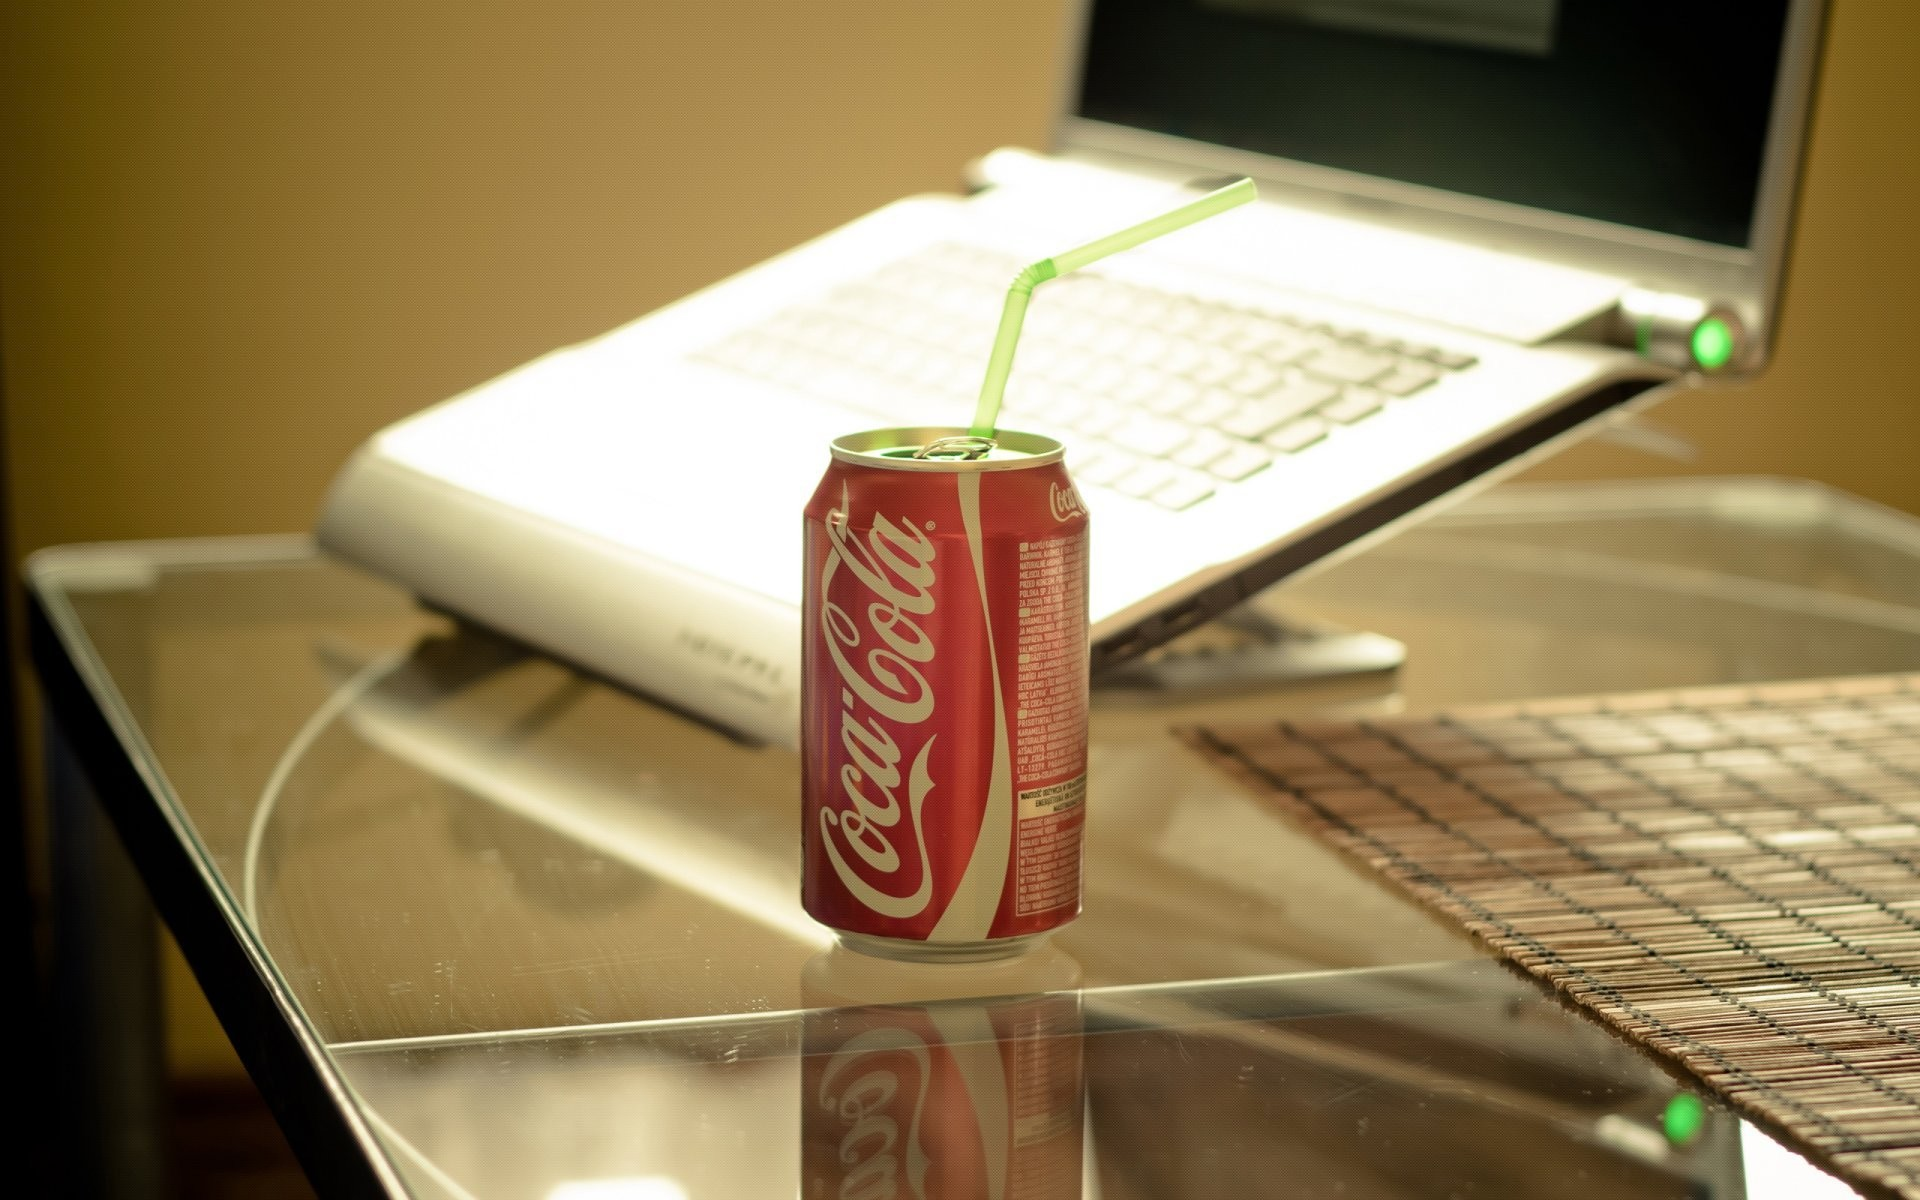 style style coca-cola drink table glass notebook notebook